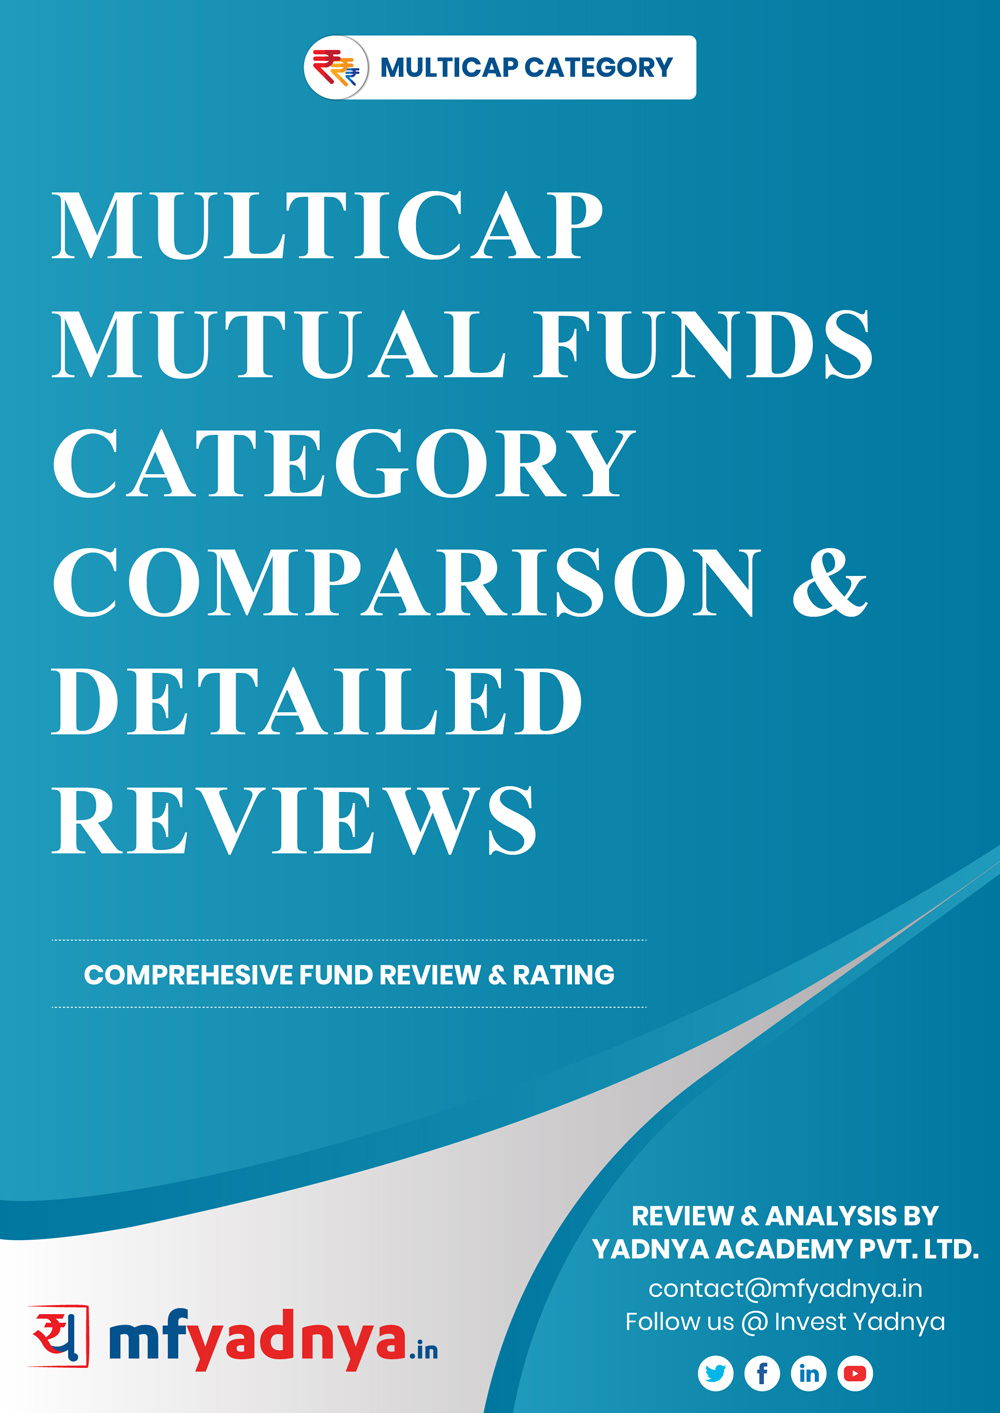 Multicap Mutual Fund Category - Detailed Analysis & Review based on latest 28th Feb, 2019 data. Most Comprehensive comparison and detailed review based on Yadnya's proprietary methodology of Green, Yellow & Red Star of 12 Multicap funds.